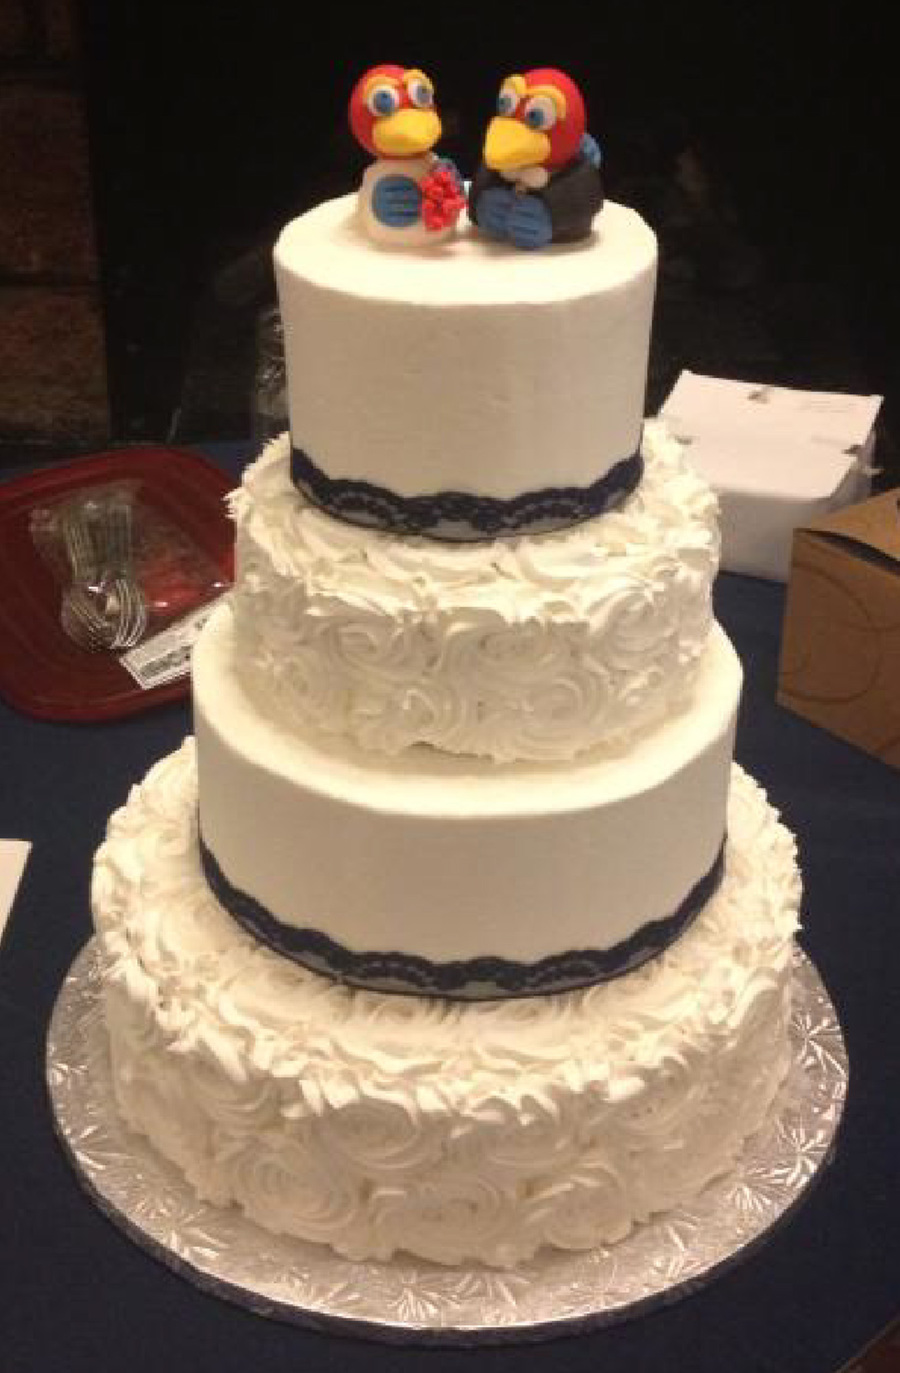 4 Tier Wedding Cake 14 10 8 6 Chocolate With Cookies N Cream Filling And Buttercream Frosting